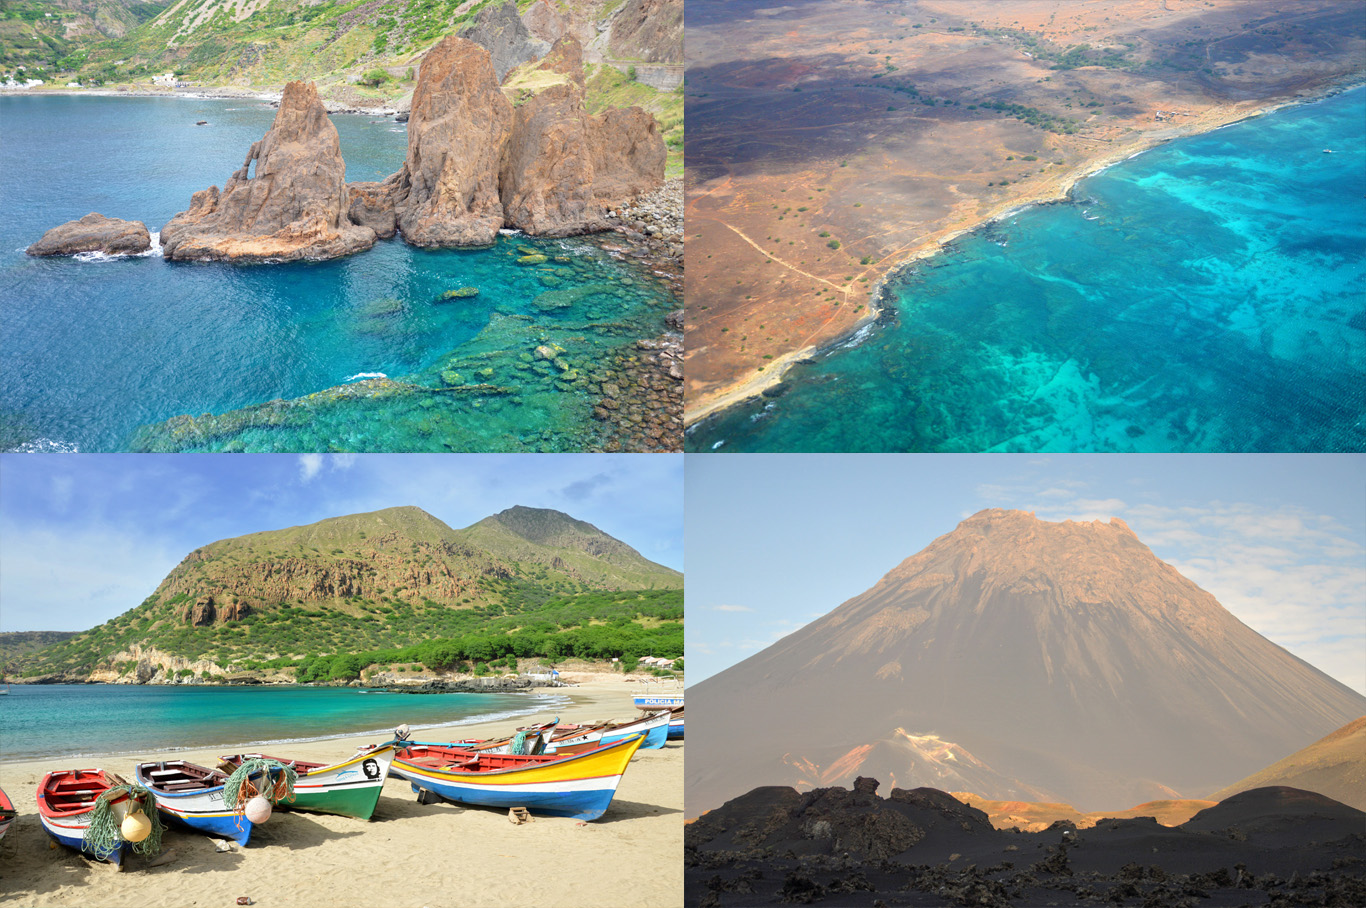 From left to right: Cliffs in Brava, the aerial view of Sal island, boats in Santiago and the volcano peak in Fogo